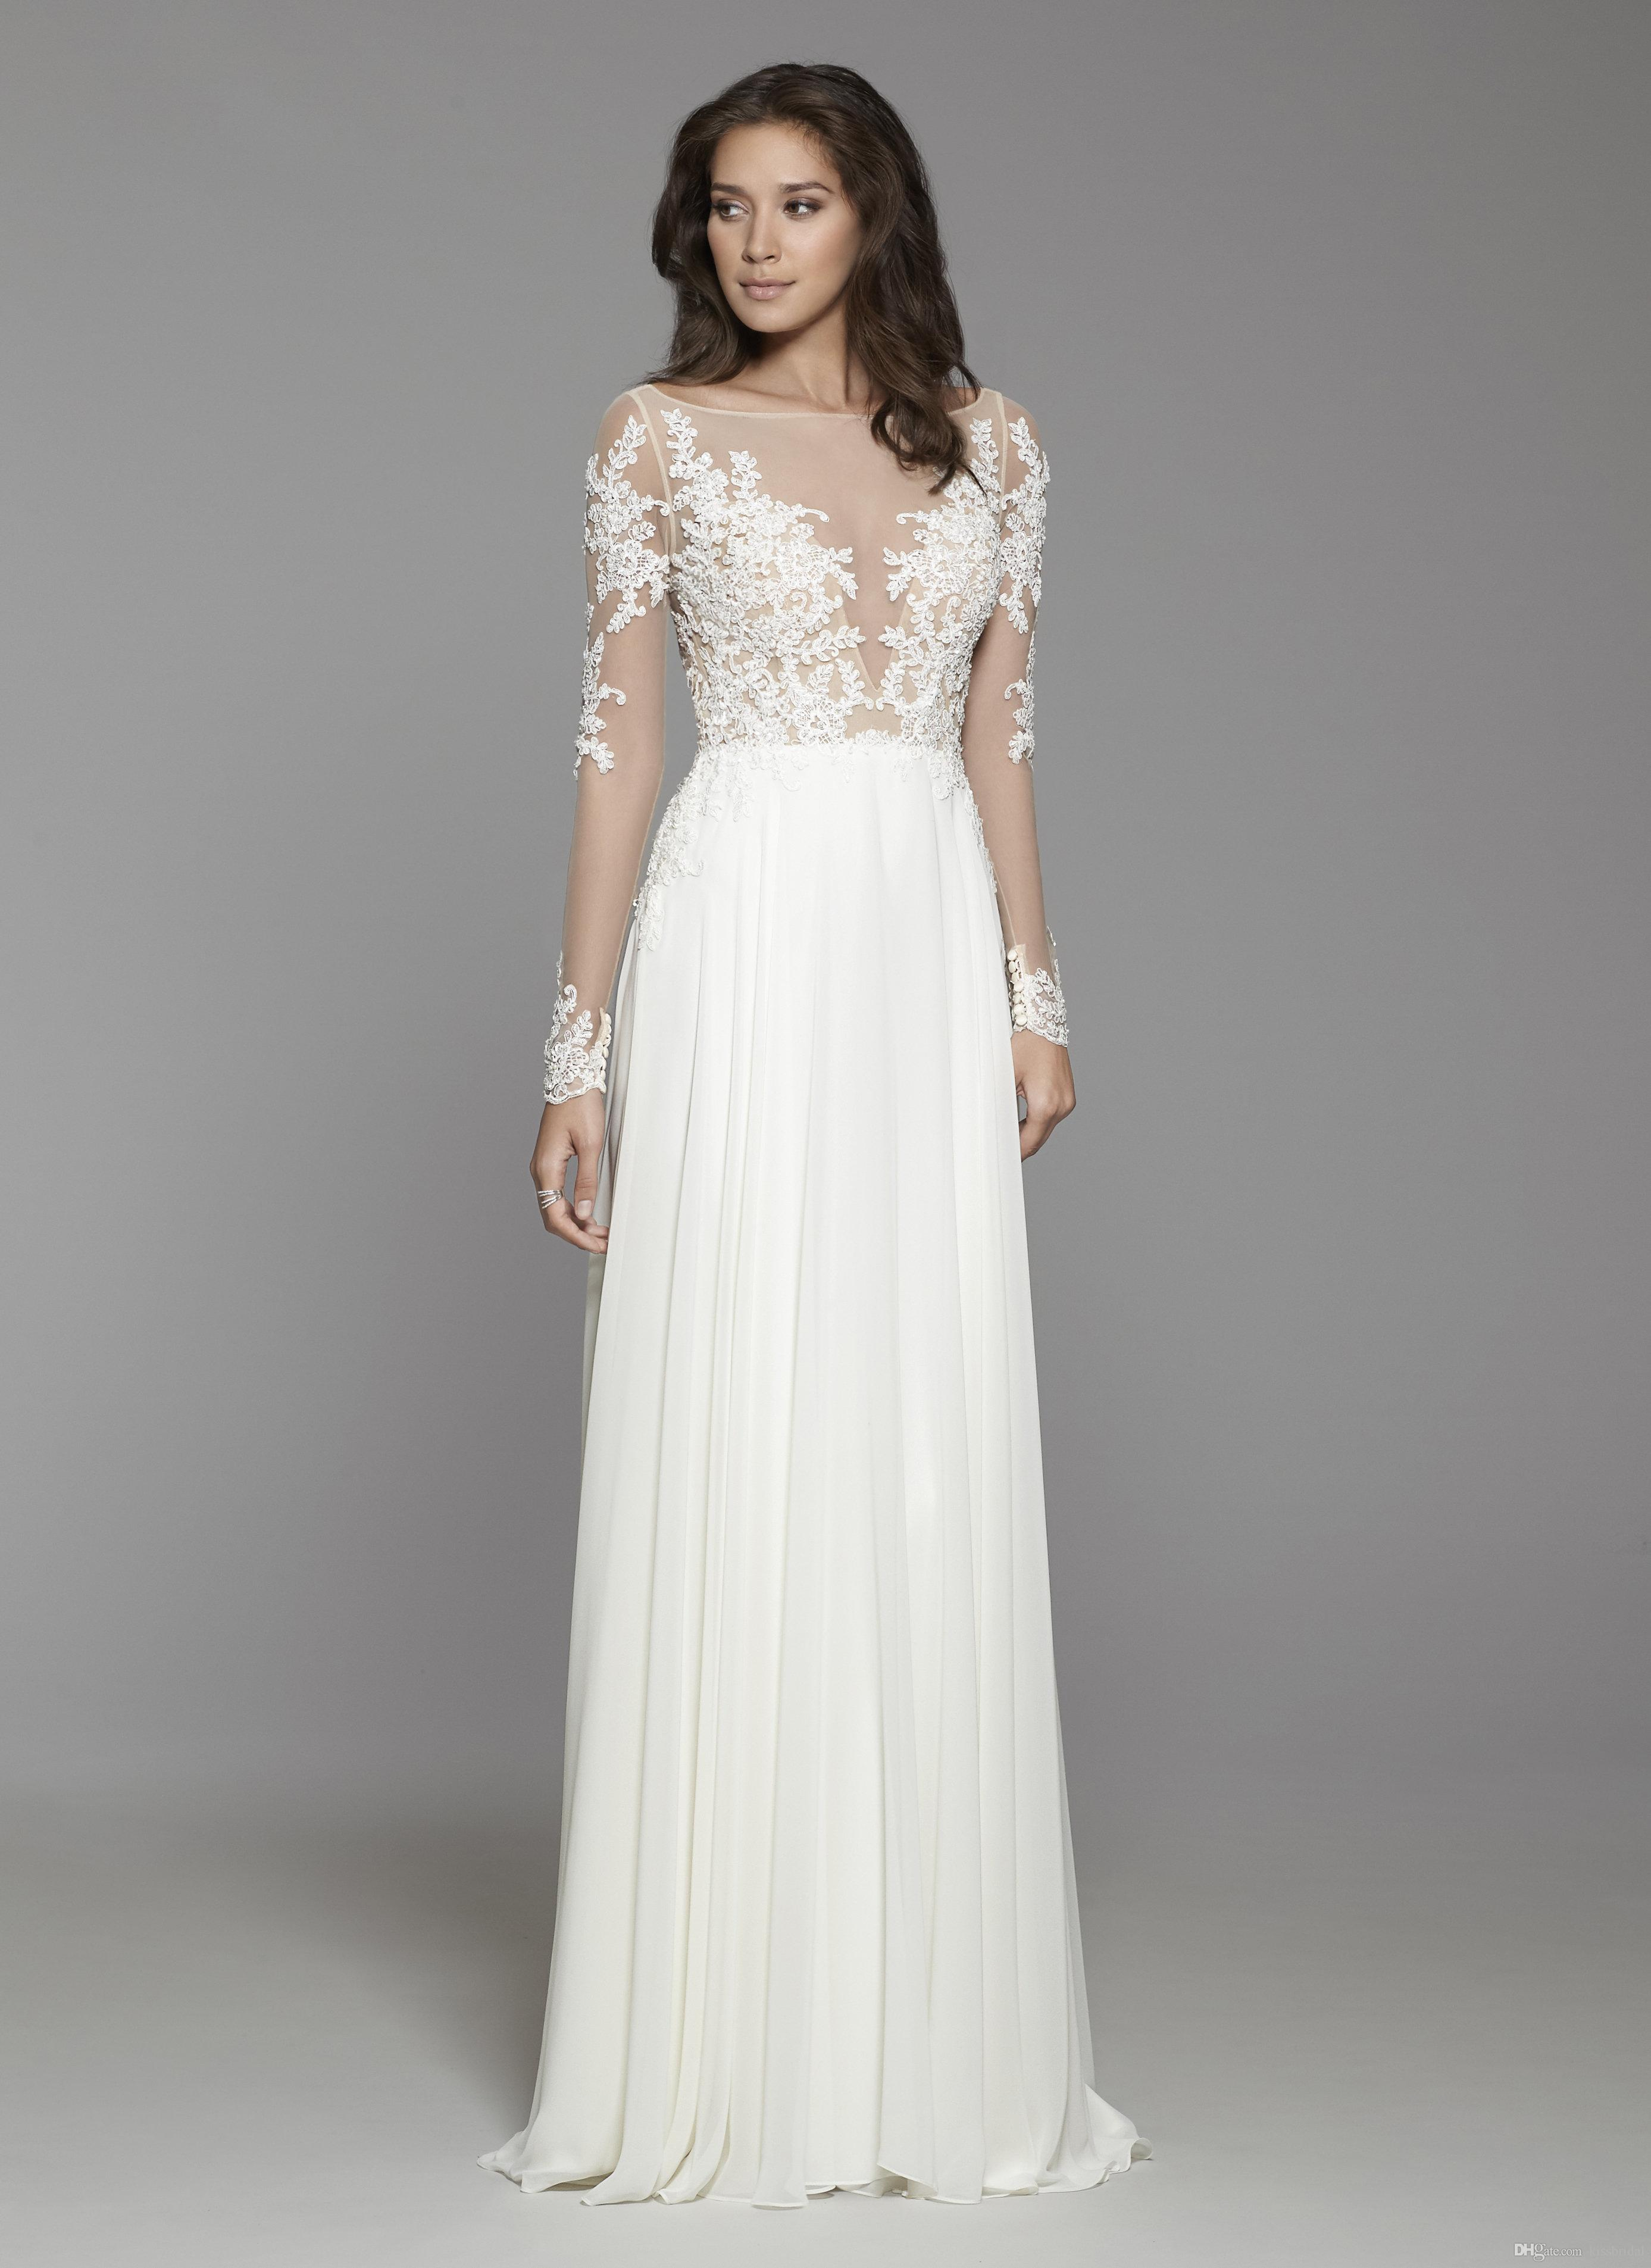 52c32559ef Discount Bohemian Wedding Dresses Long Sleeve 2019 Vestido De Novia Sheer  Illusion BateauNeckline Chiffon Lace Wedding Dress Bridal Gowns Beach Gown  Wedding ...